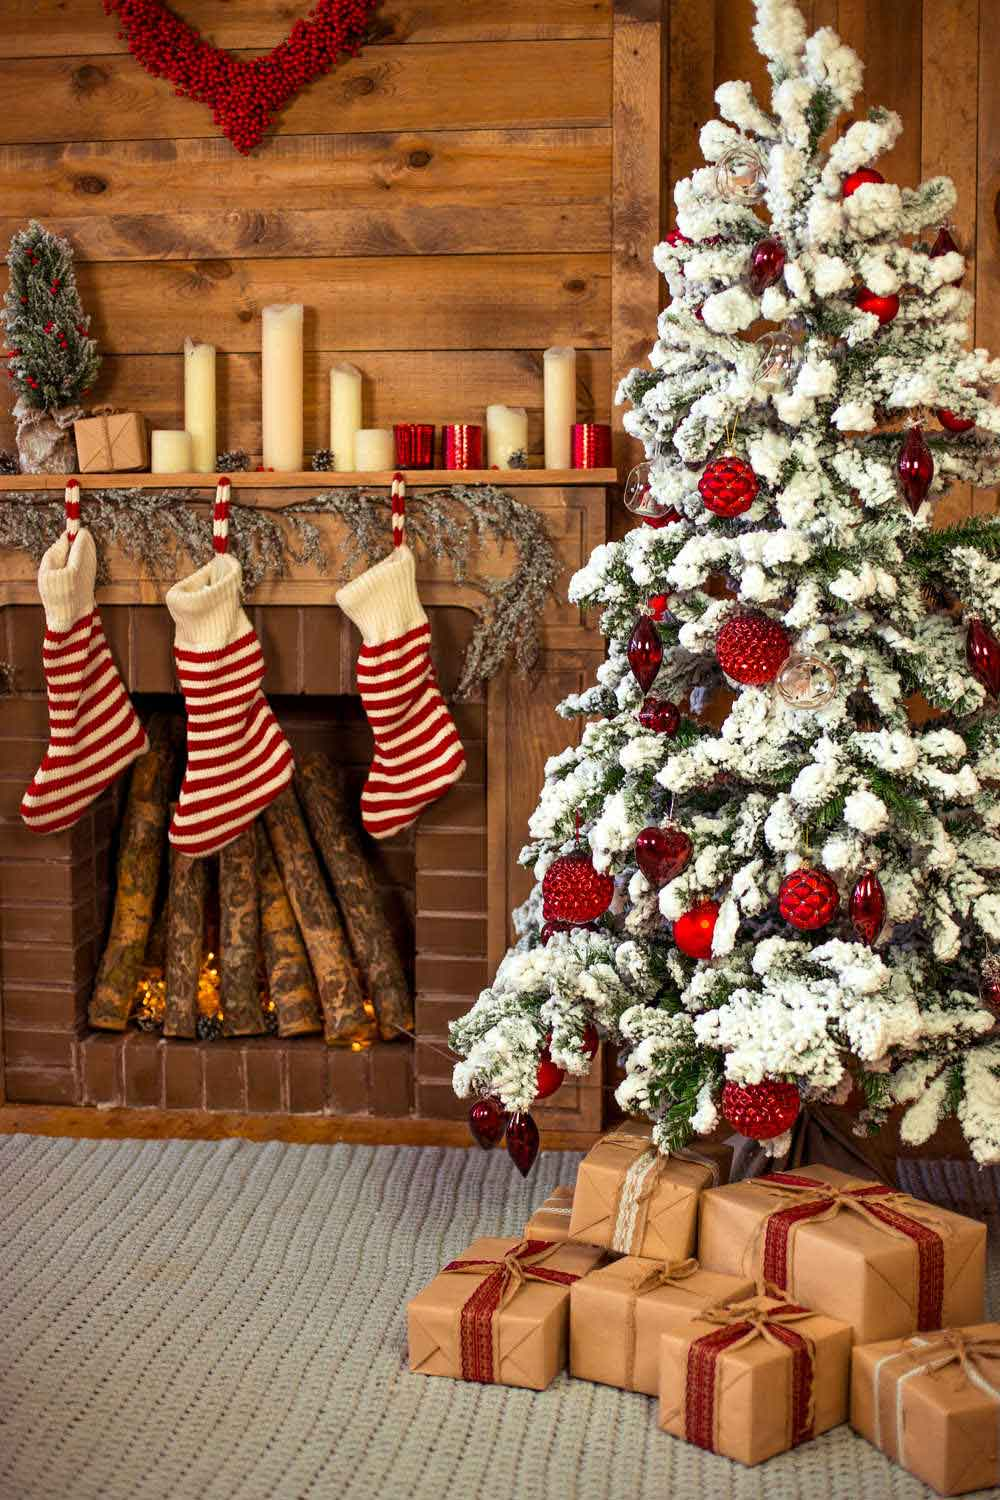 A cozy living room with a flocked tree, a fire filled with wood, three striped stockings and candles on the mantle.